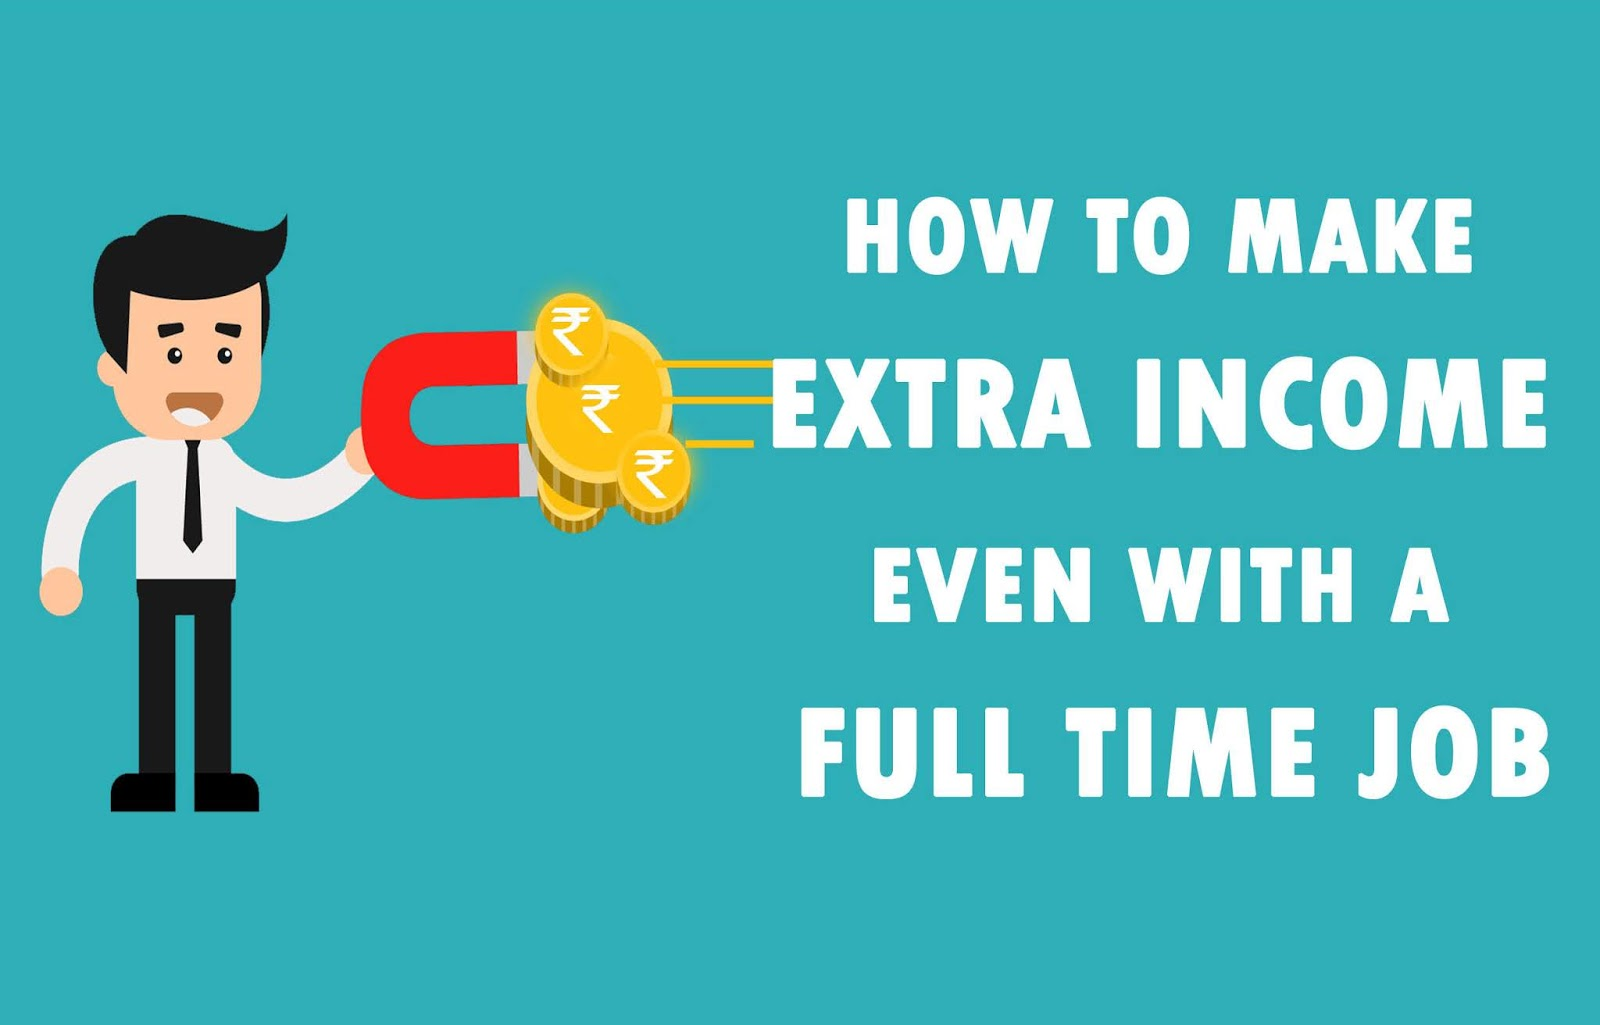 HOW TO MAKE EXTRA INCOME EVEN WITH A FULL TIME JOB